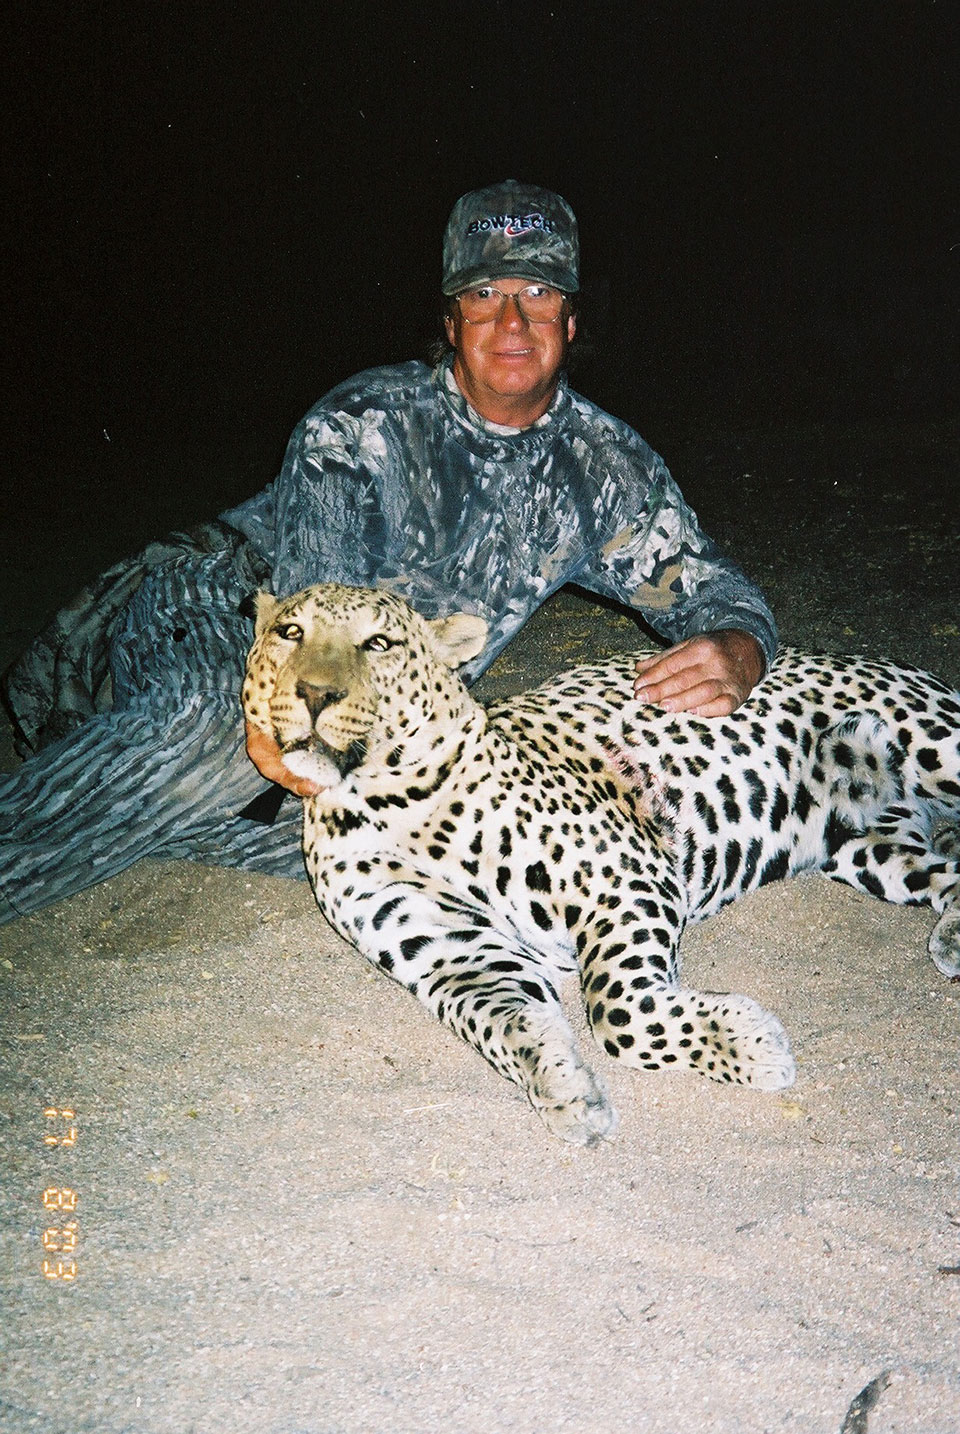 large-trophy-leopard-hunted-in-Namibia-Africa.jpg